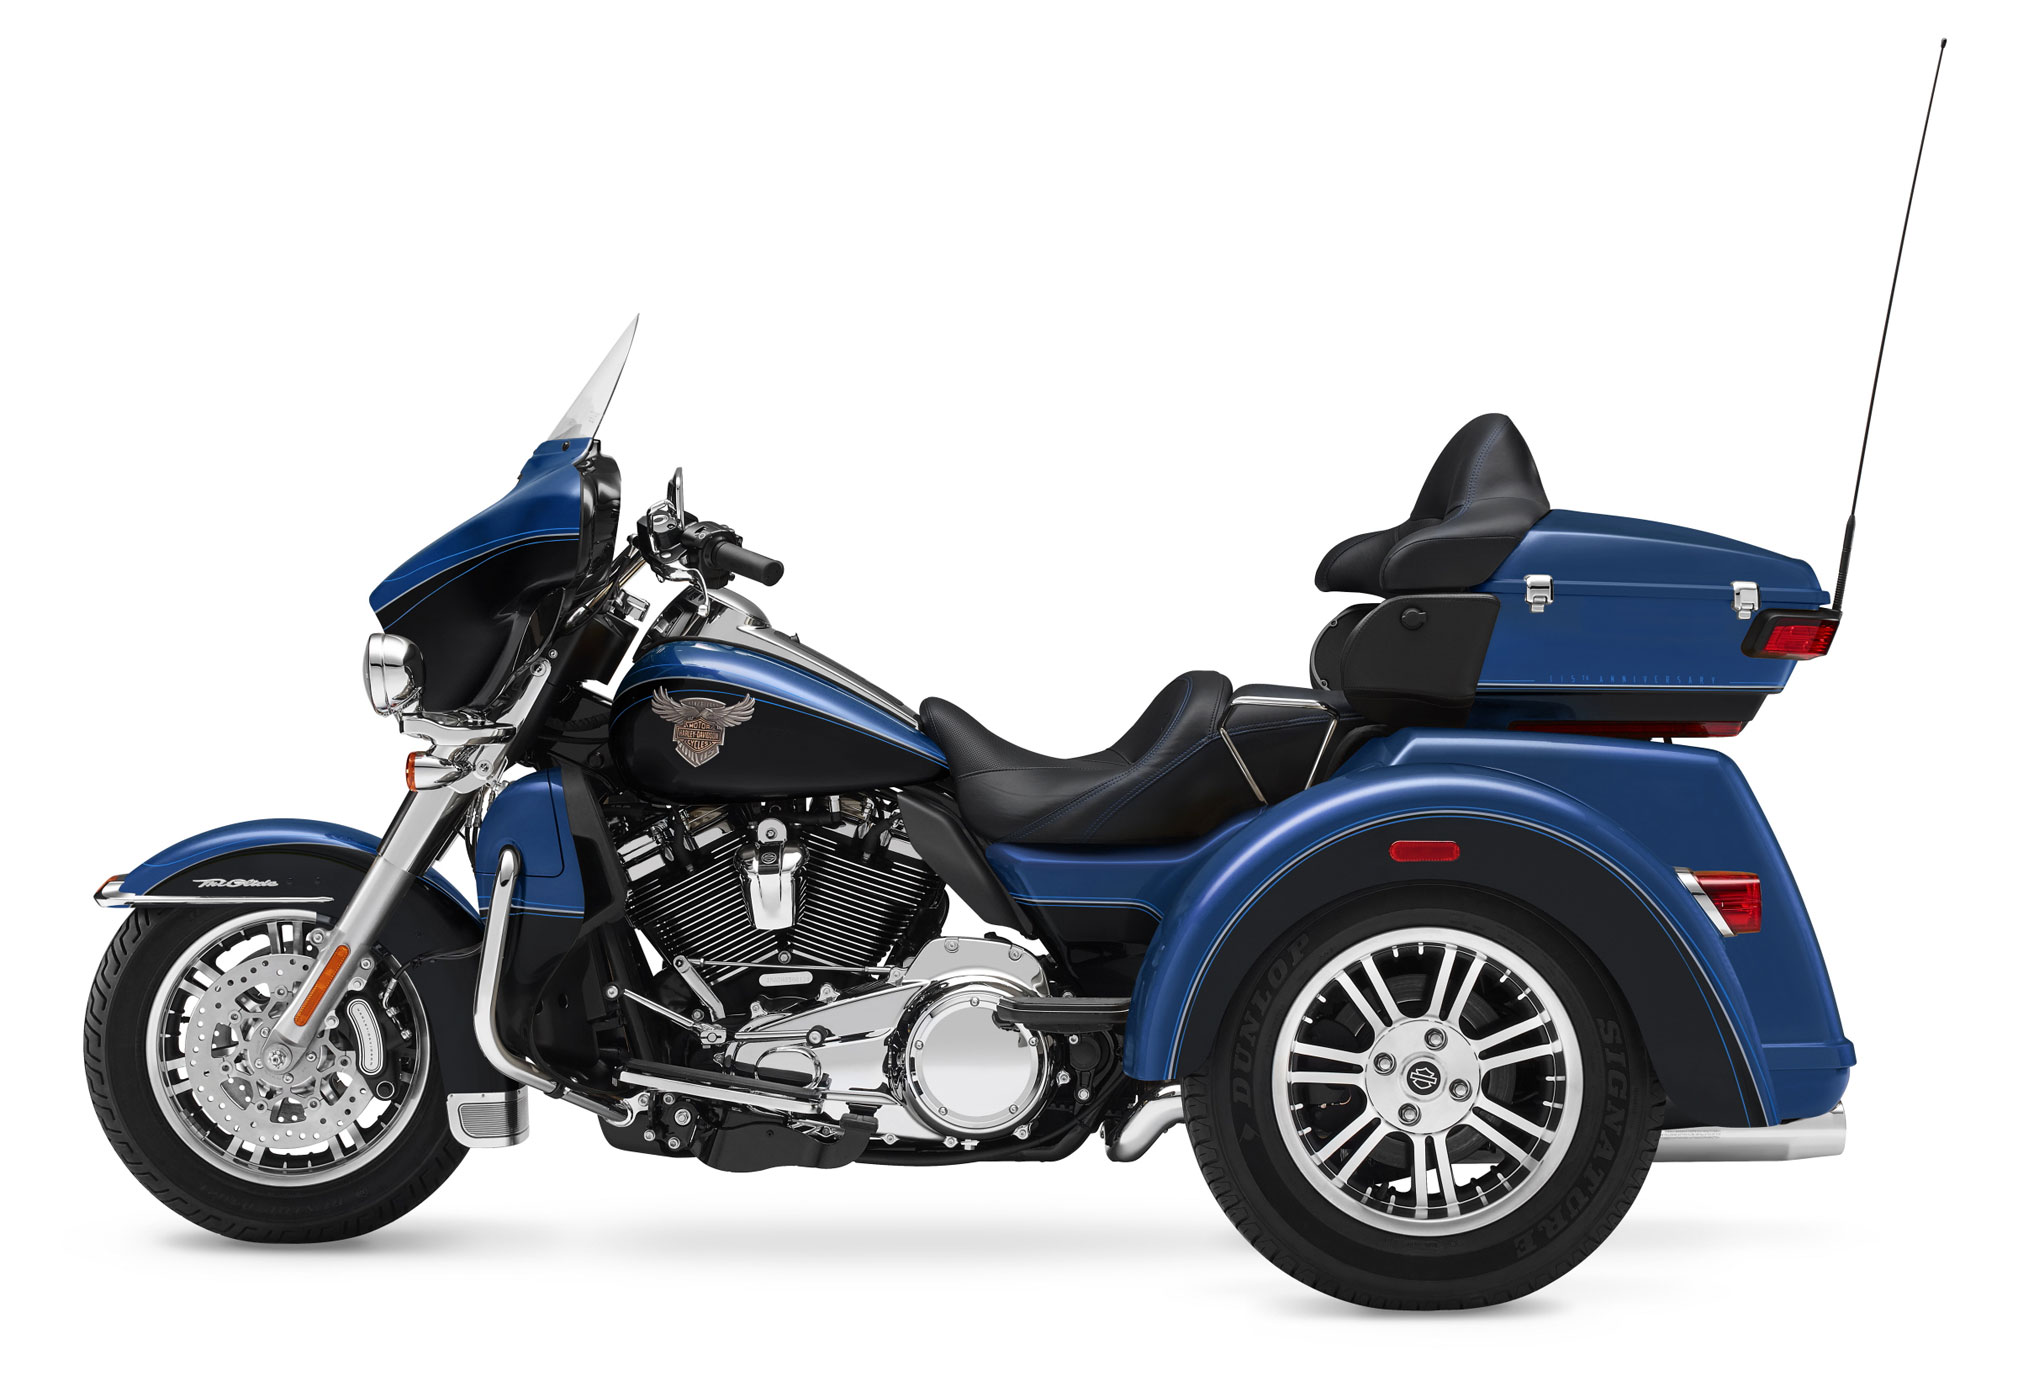 2018 harley davidson tri glide ultra 115th anniversary review totalmotorcycle. Black Bedroom Furniture Sets. Home Design Ideas